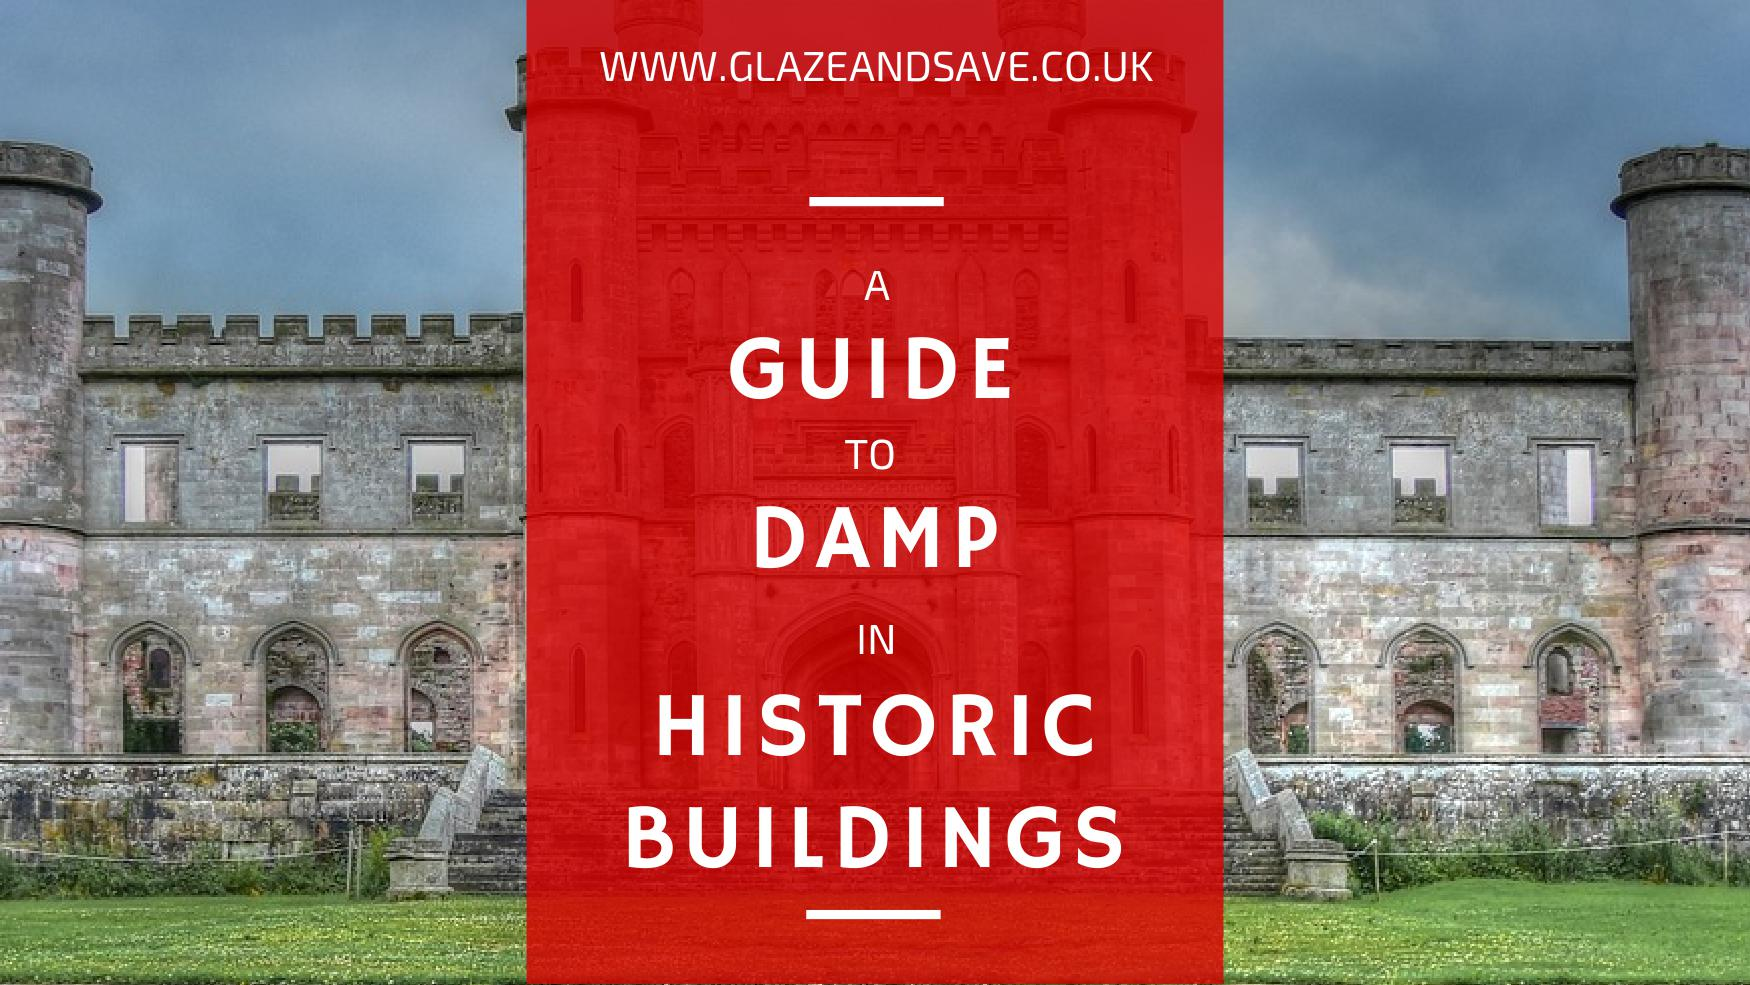 A guide to damp in historic buildings by Glaze & Save bespoke magnetic secondary glazing and draught proofing in Scotland from Aberdeen to Edinburgh, Glasgow to Dundee.